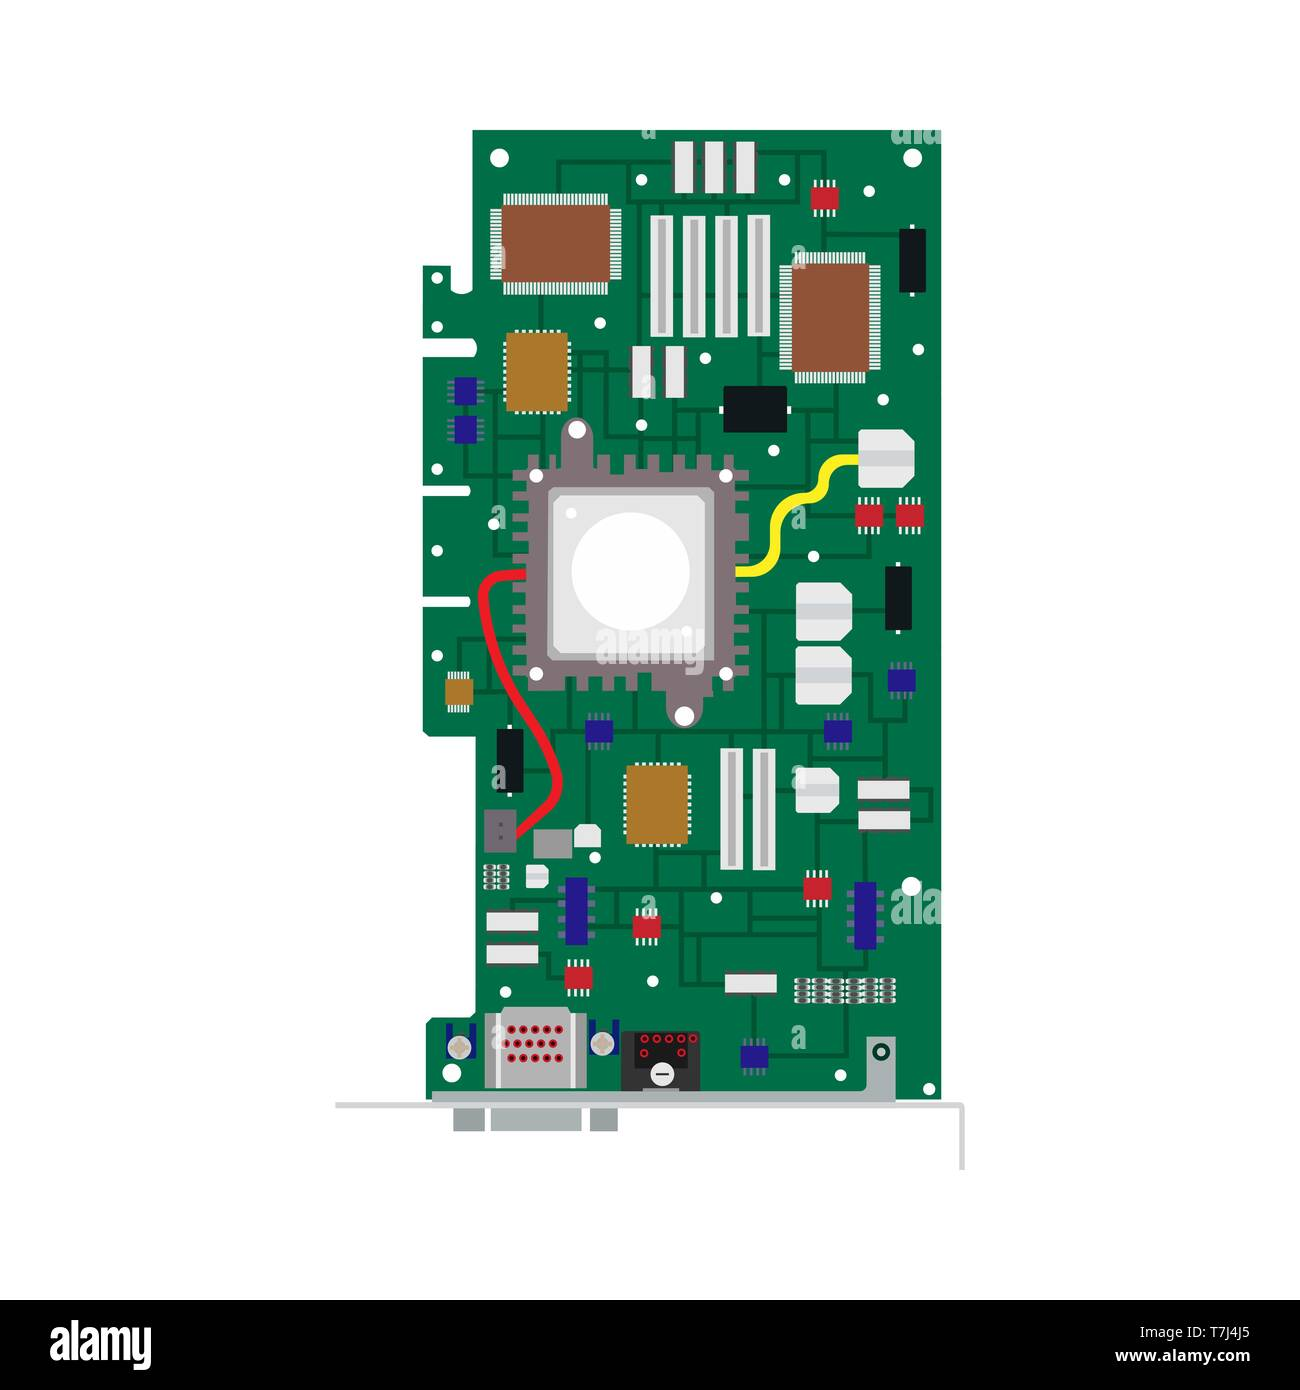 cpu vector vectors high resolution stock photography and images alamy https www alamy com omputer board technology circuit vector flat icon cpu card part hardware image245646525 html